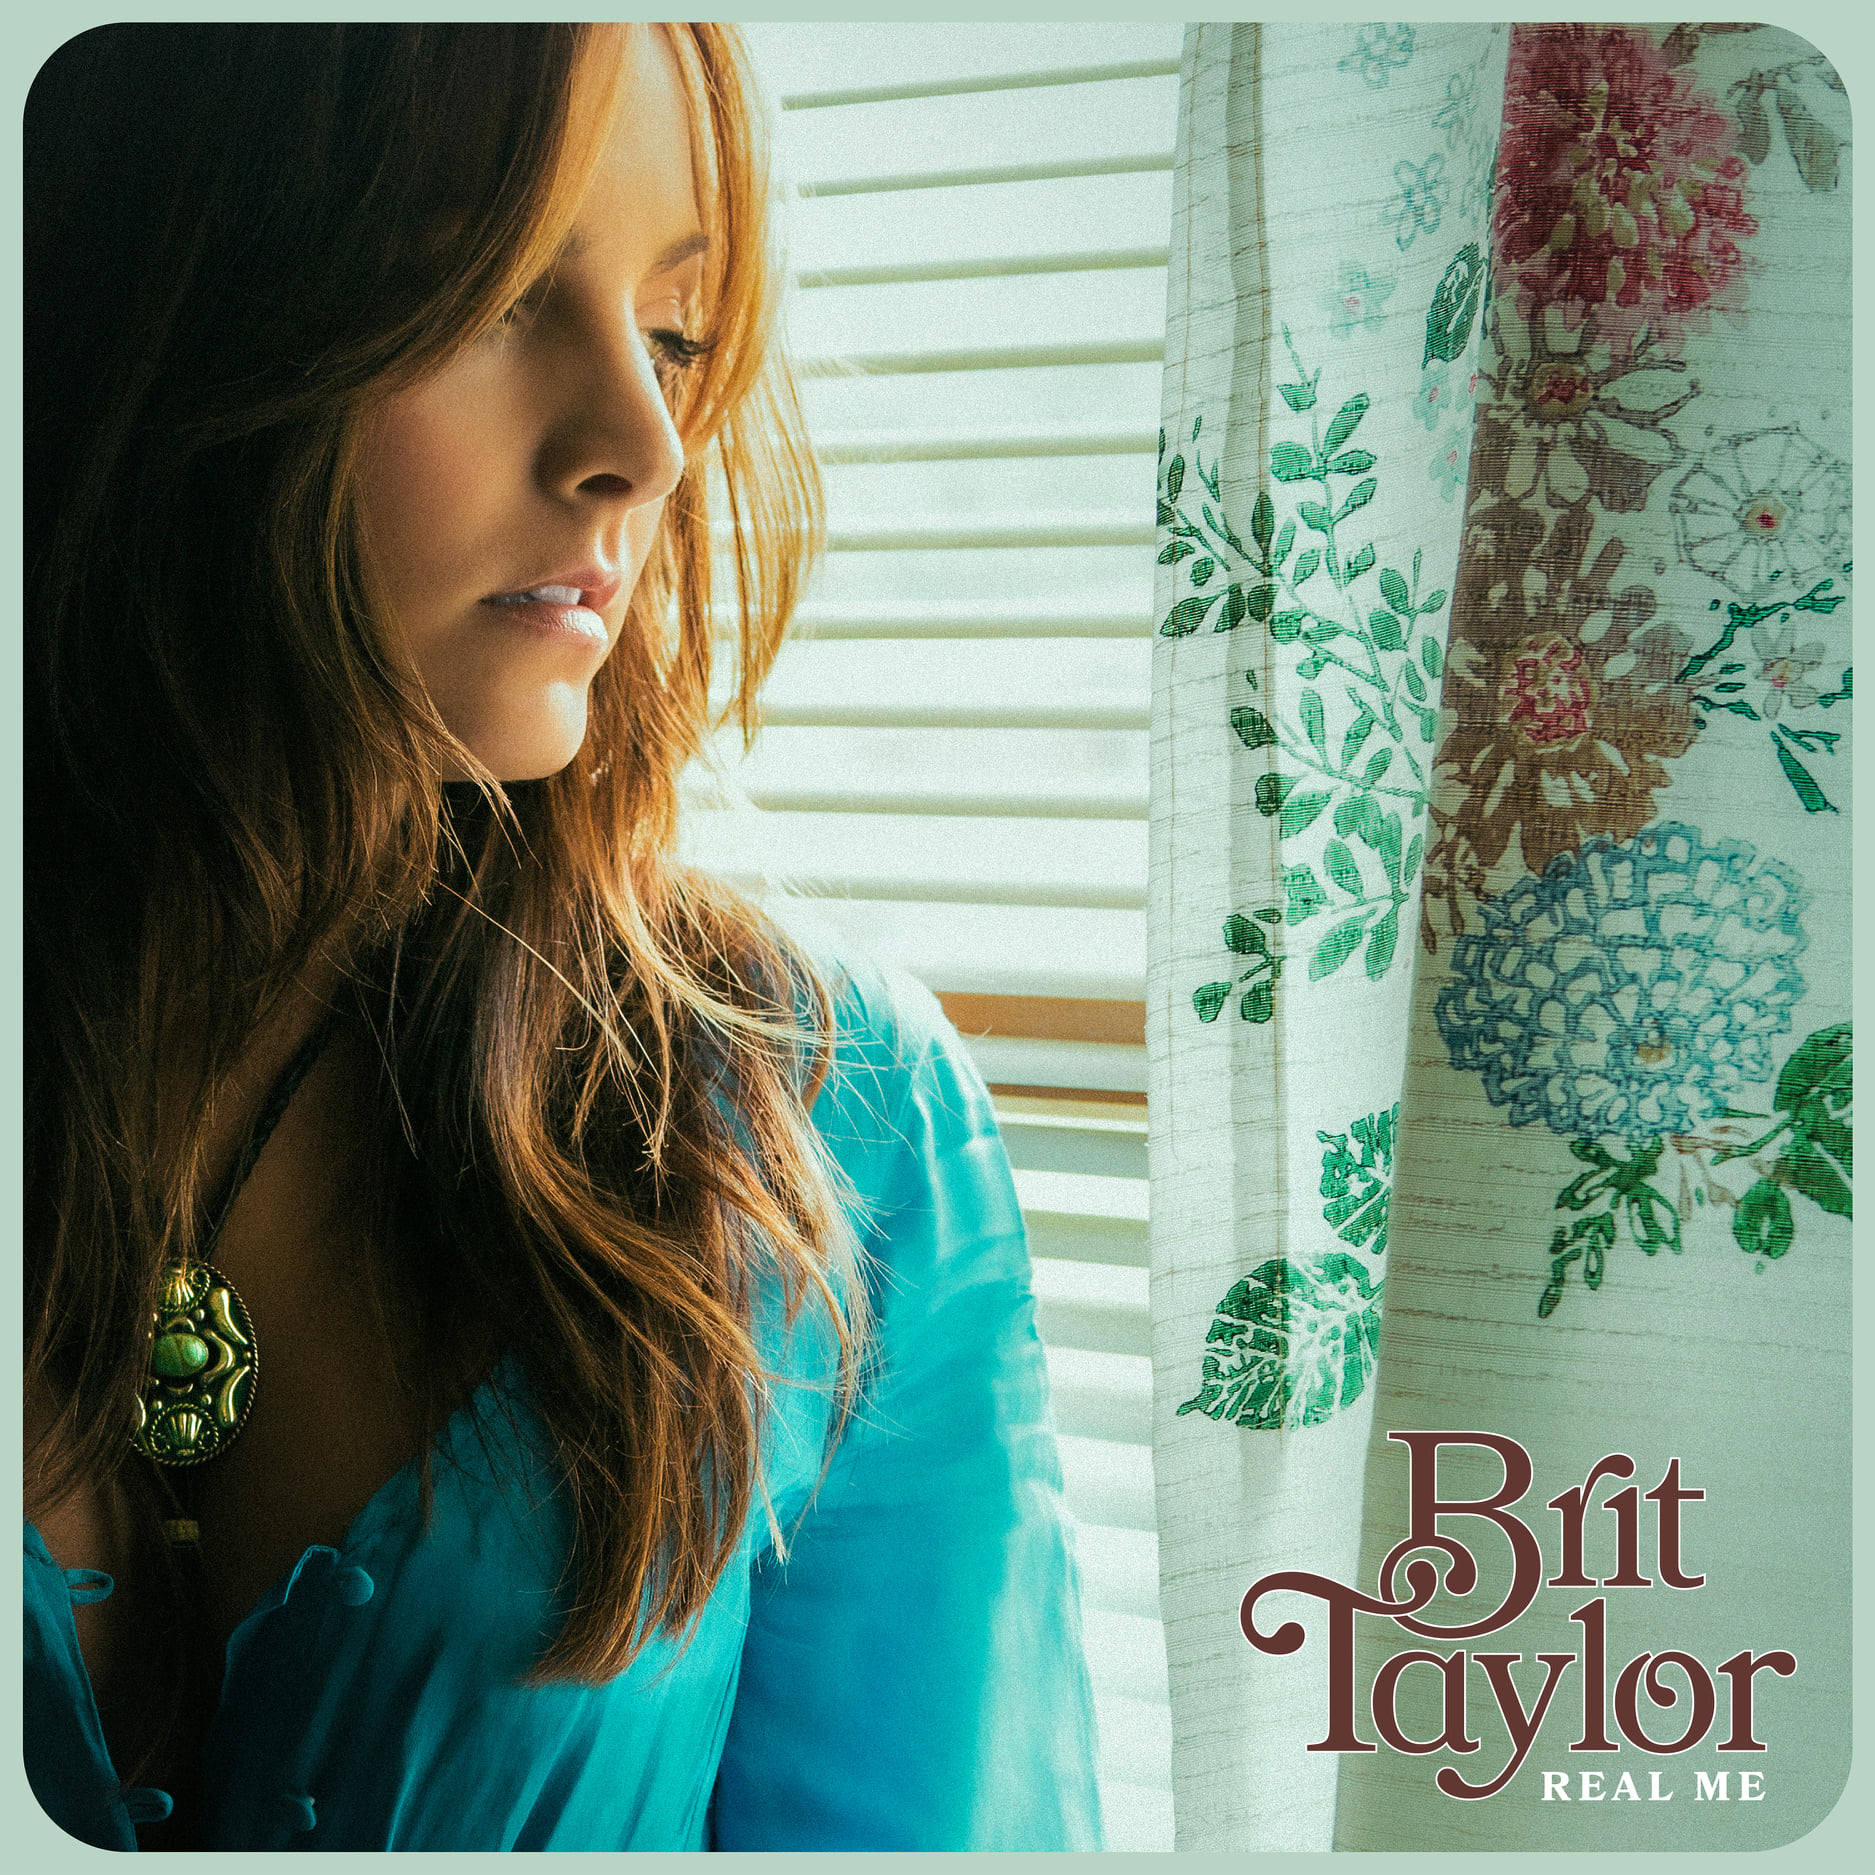 Kentucky's Brit Taylor finds her soul through latest release